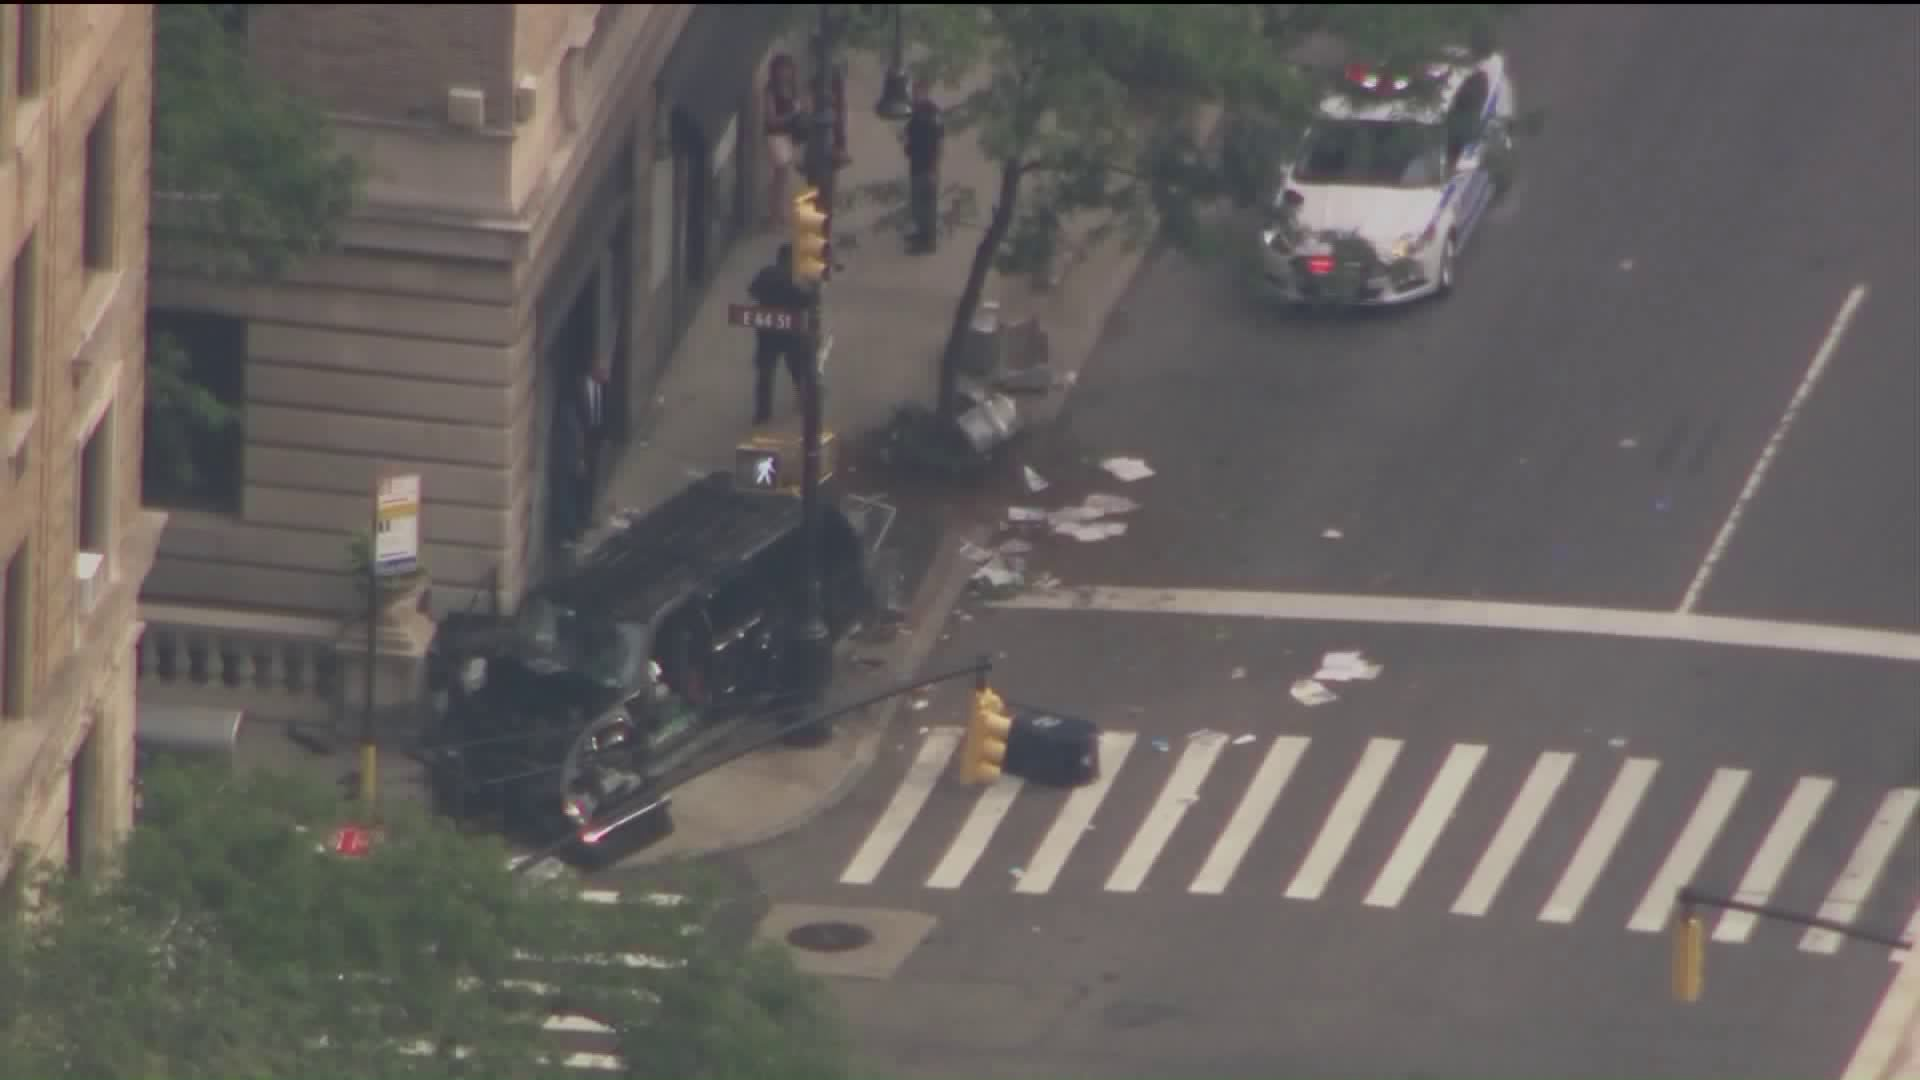 3 Injured When SUV Jumps Curb, Slams into Building in New York City